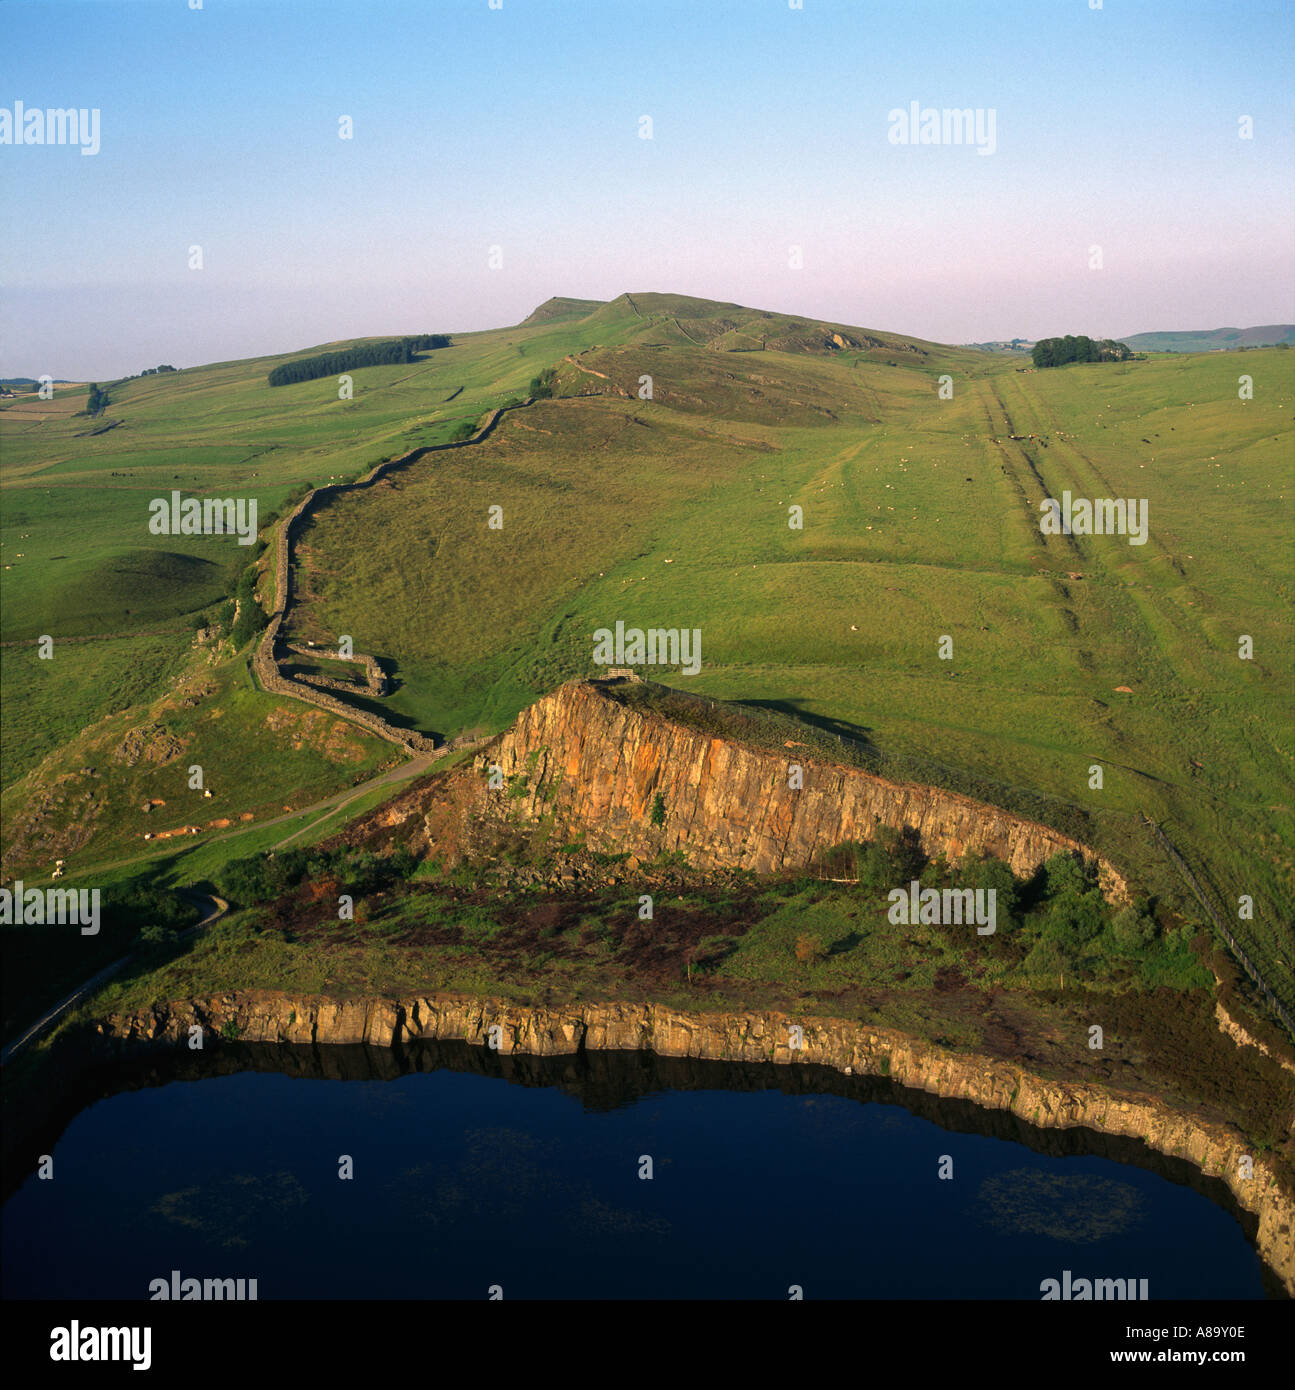 Cawfields milecastle Hadrian s Wall with Vallum defensive ditch on right Northumberland UK aerial view - Stock Image